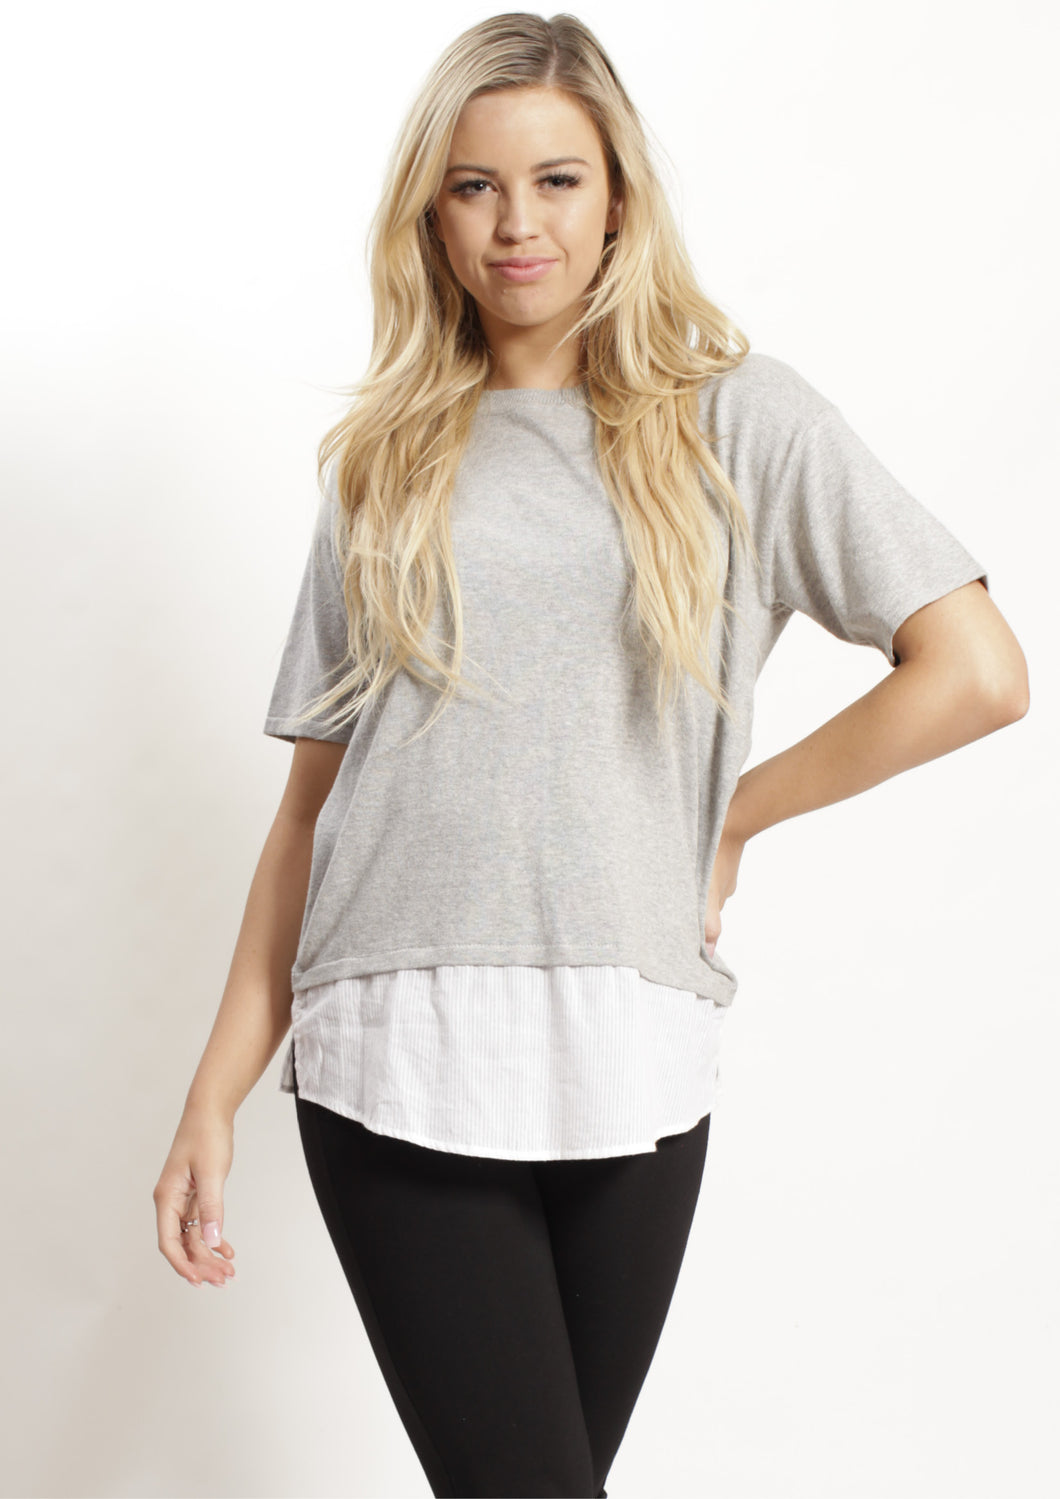 WA0244TB Knit Top With Striped Hem Insert (Pack)